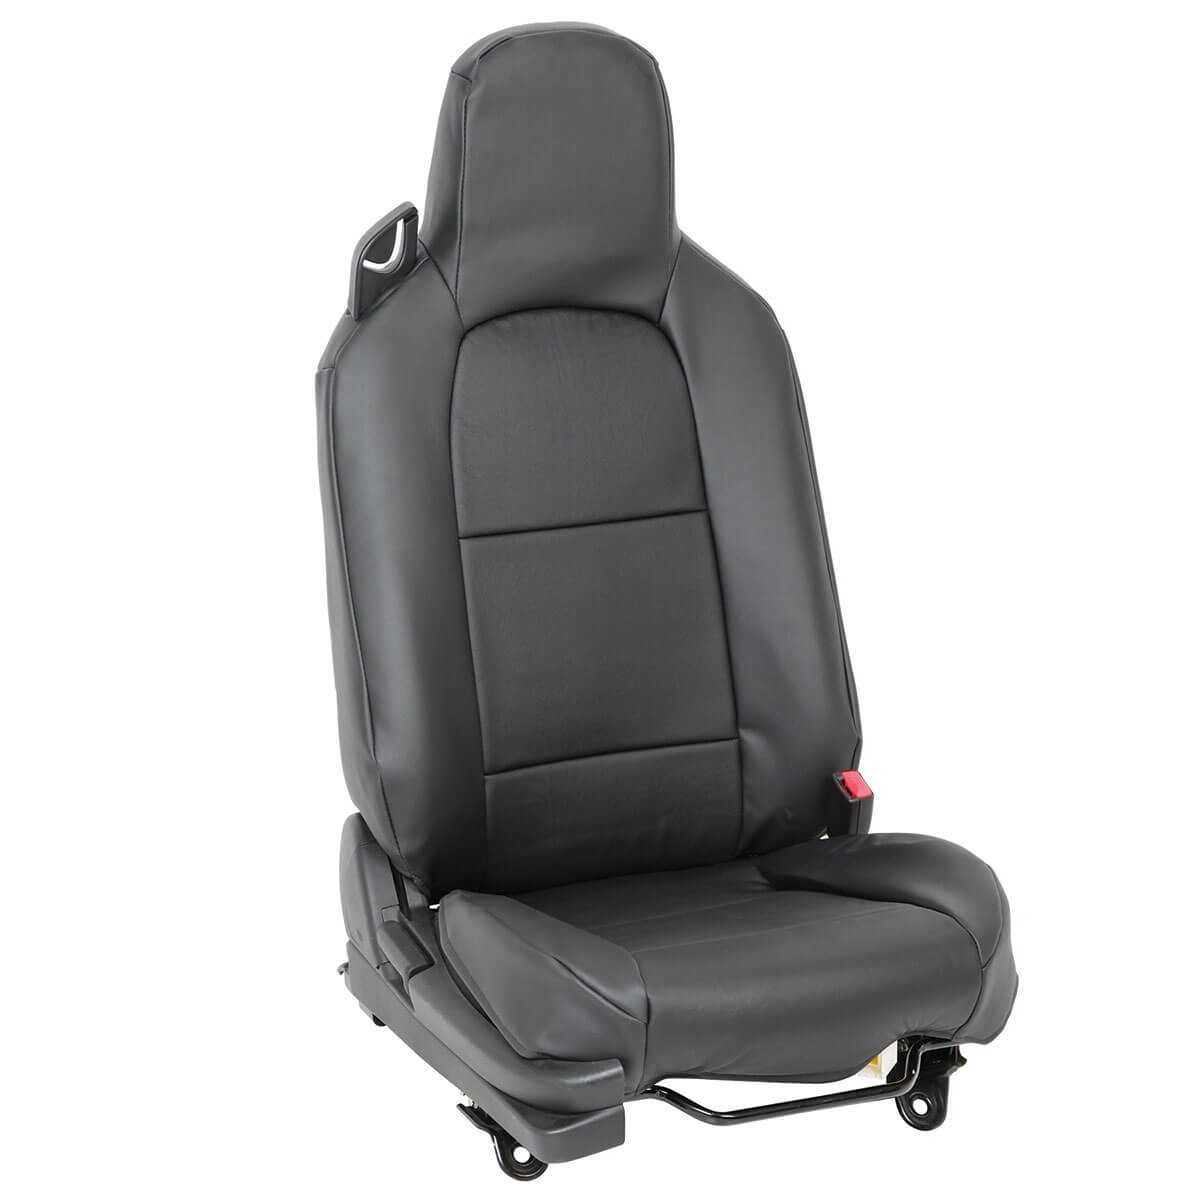 Deluxe Leather Seat Covers  Seats Covers Etc  Interior